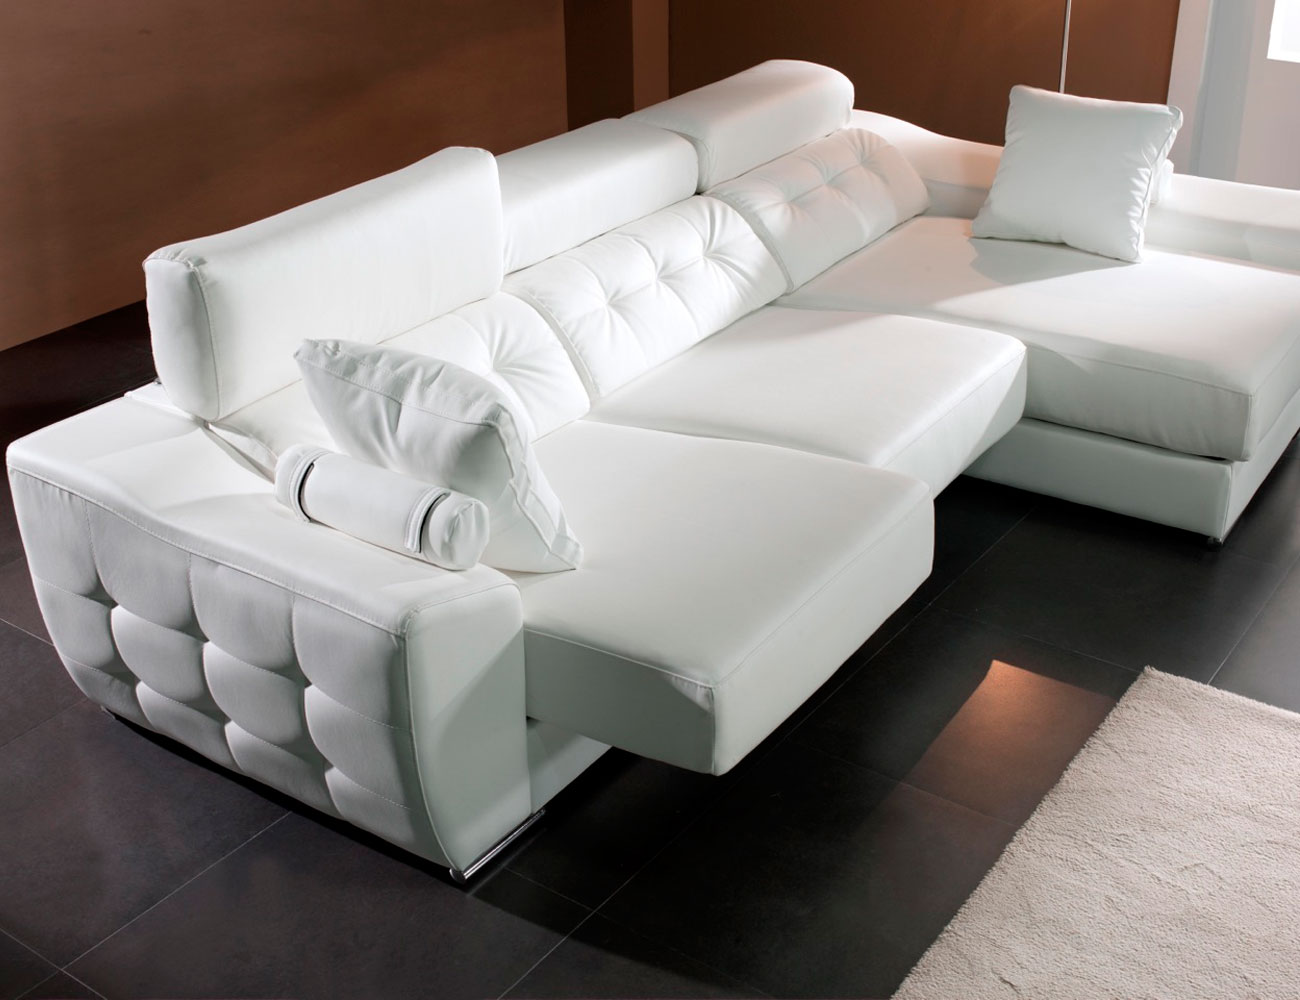 Sof Chaiselongue Ulisses Con Capiton 9171 Factory